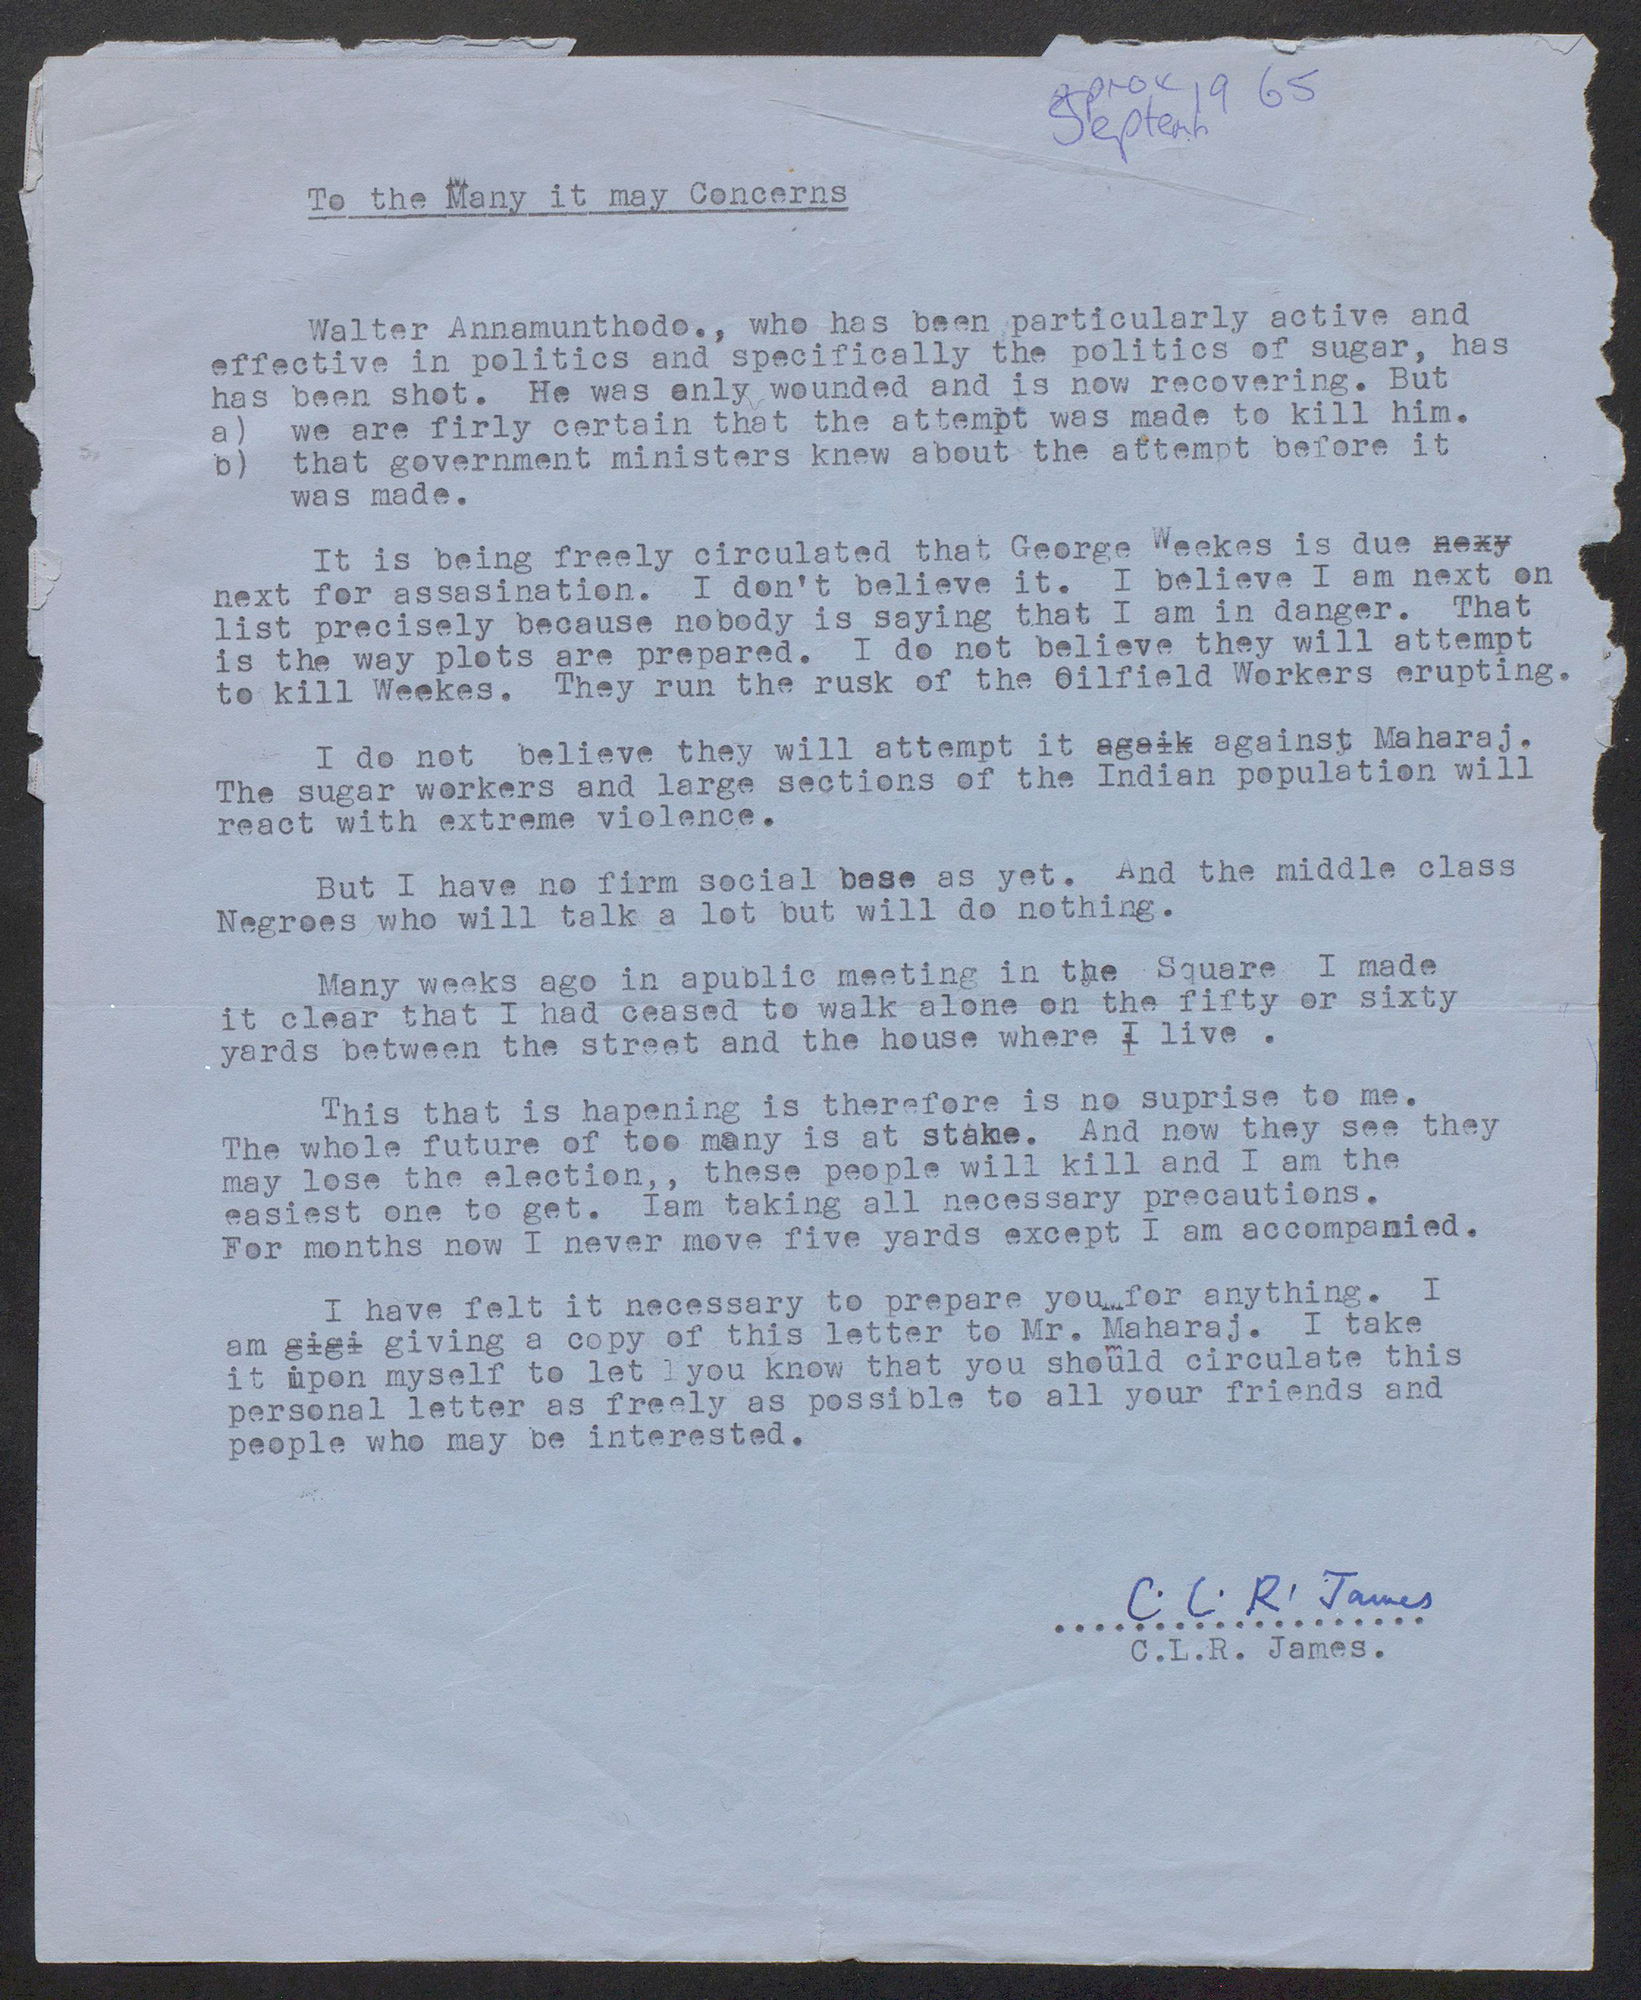 Letter from C L R James to Andrew Salkey, 1965